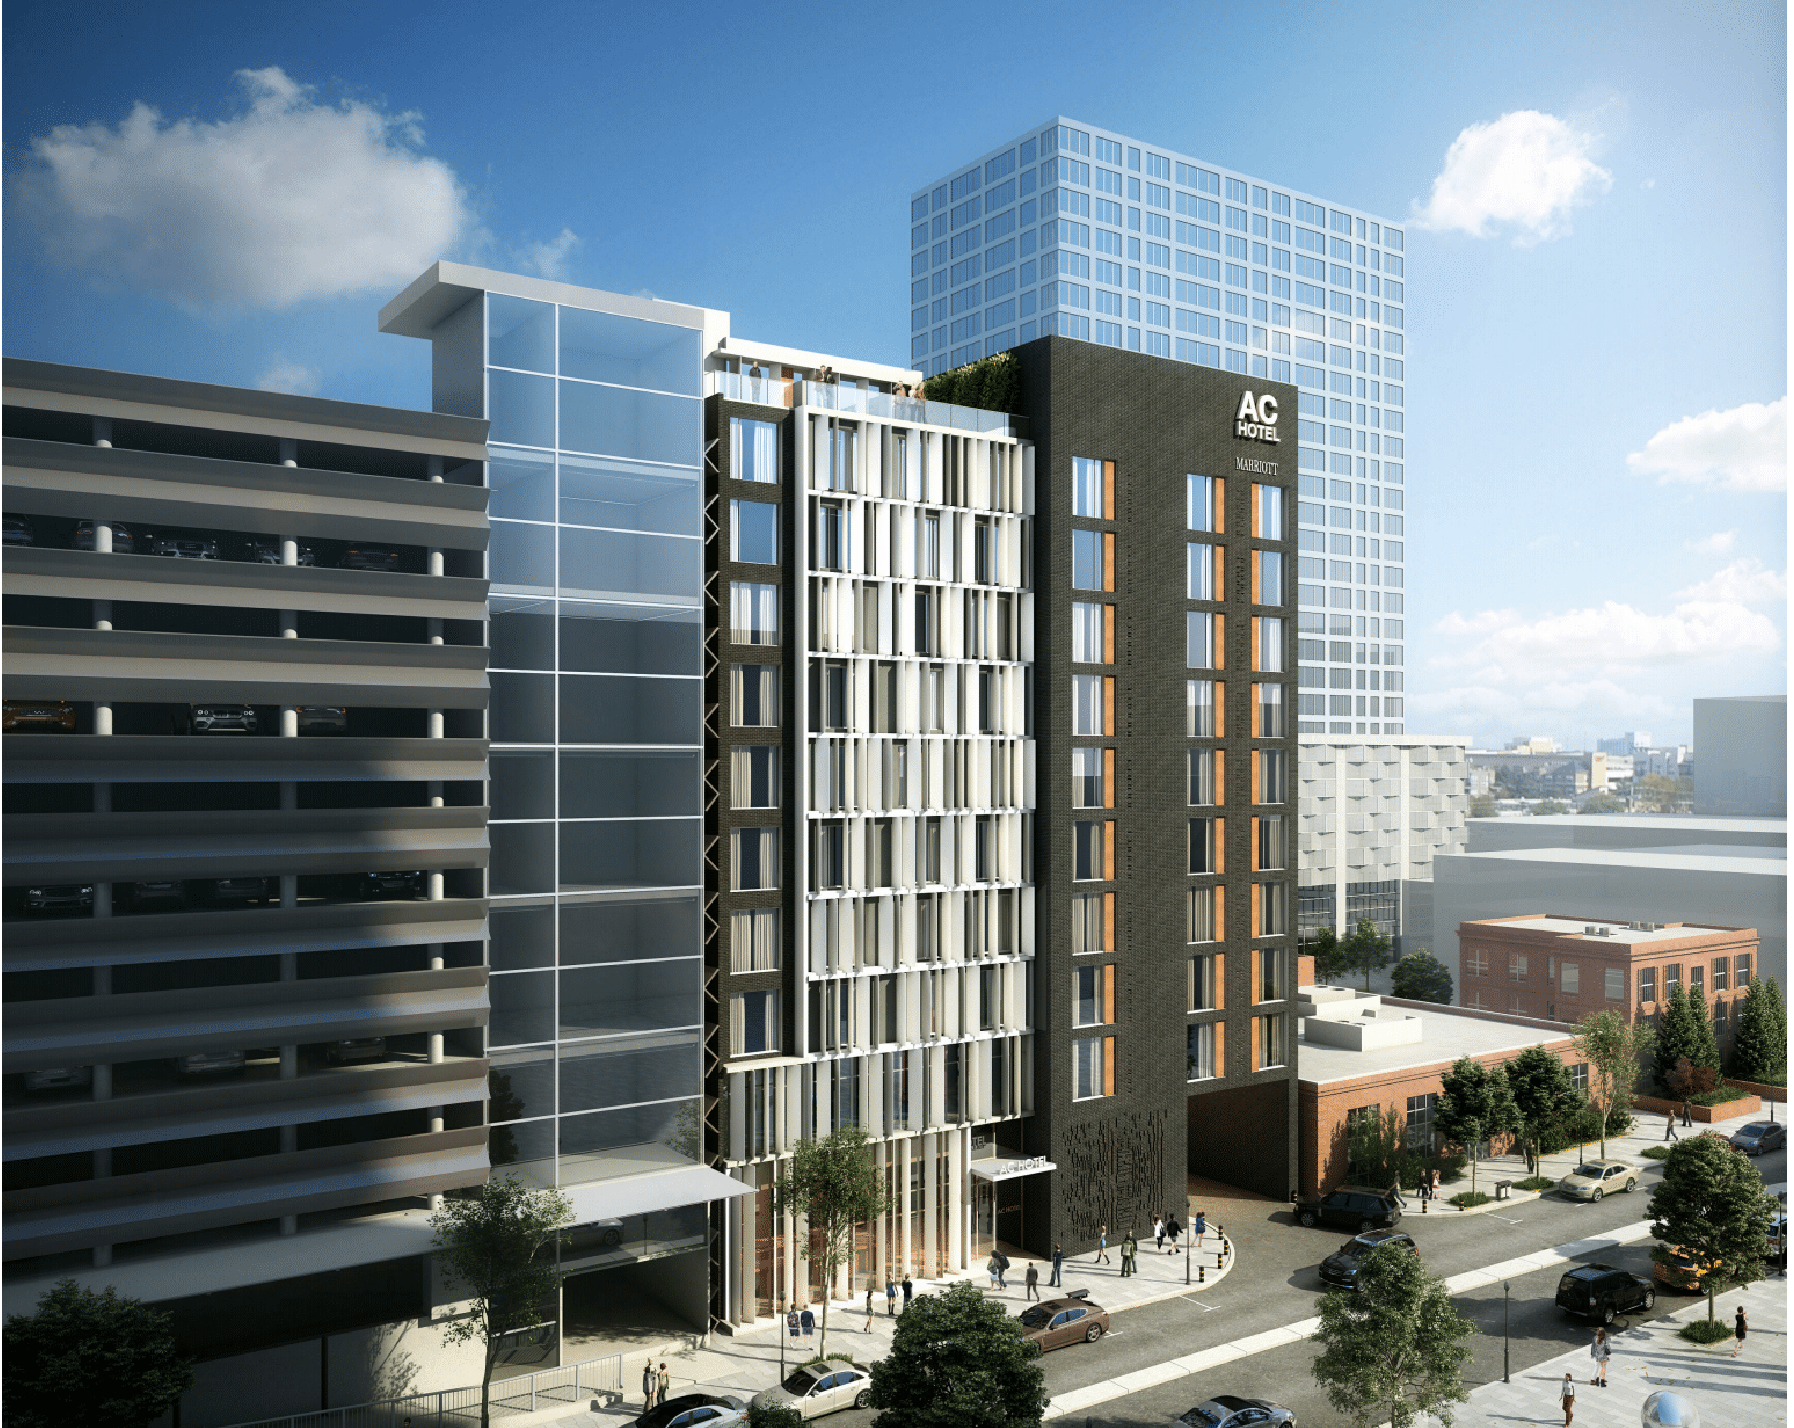 AC Hotel gets positive conceptual review from Clayton Plan Commission